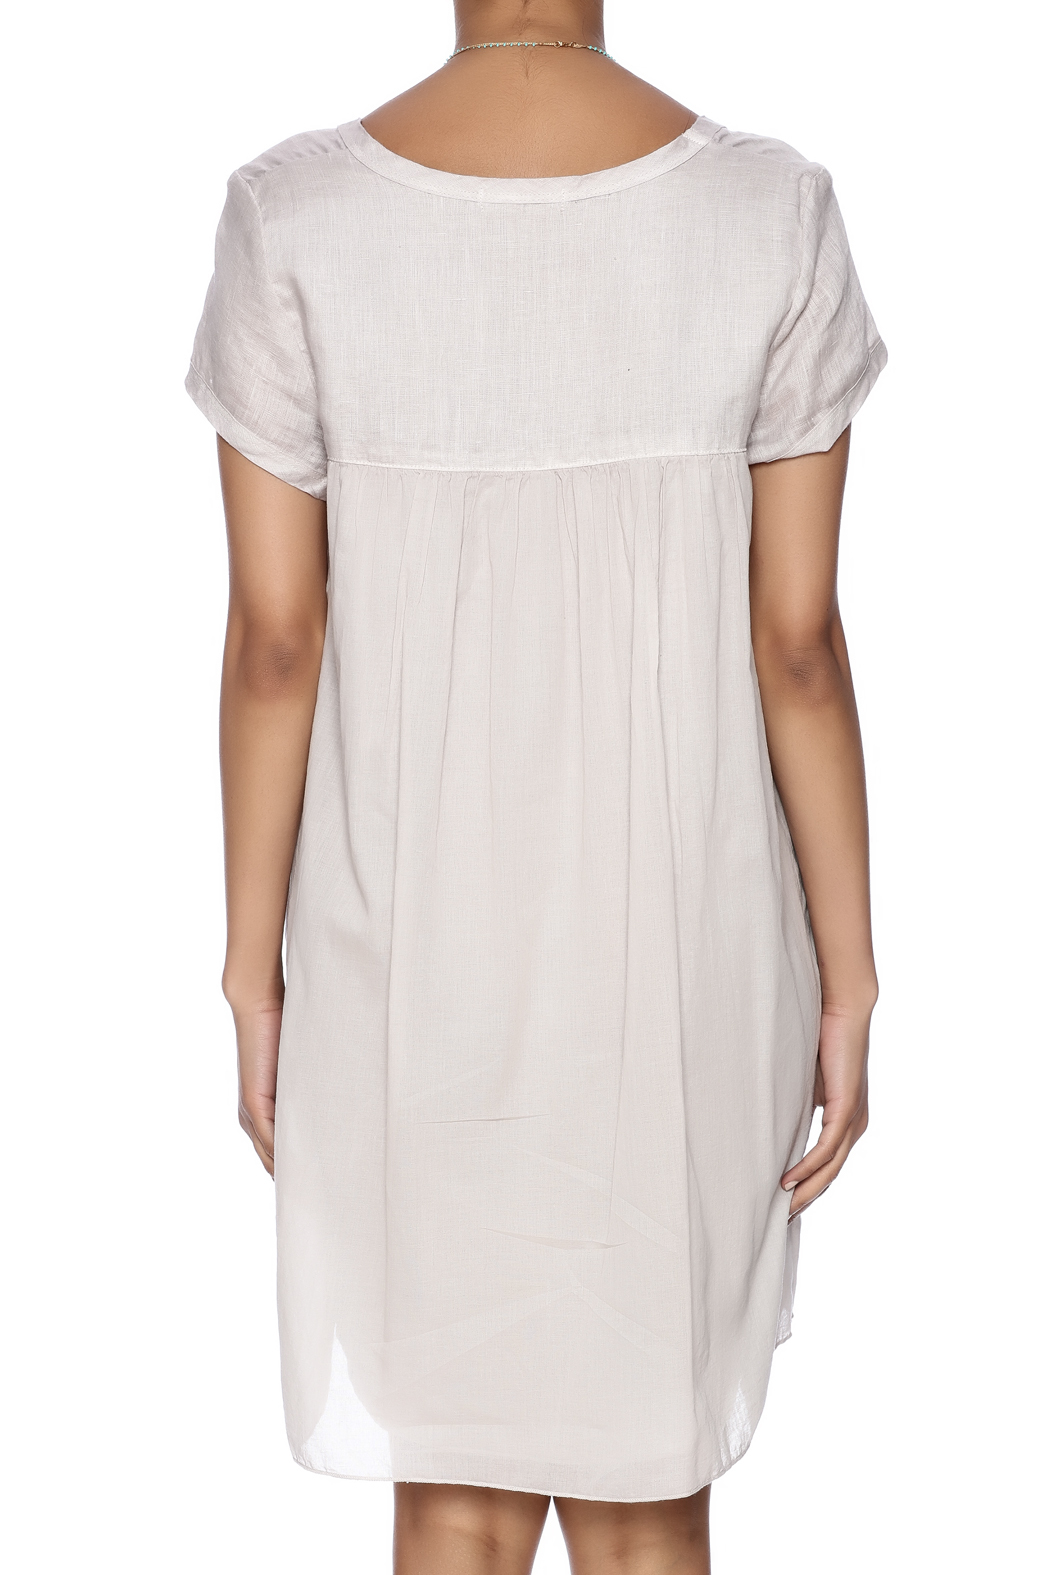 CP Shades Linen Tunic - Back Cropped Image